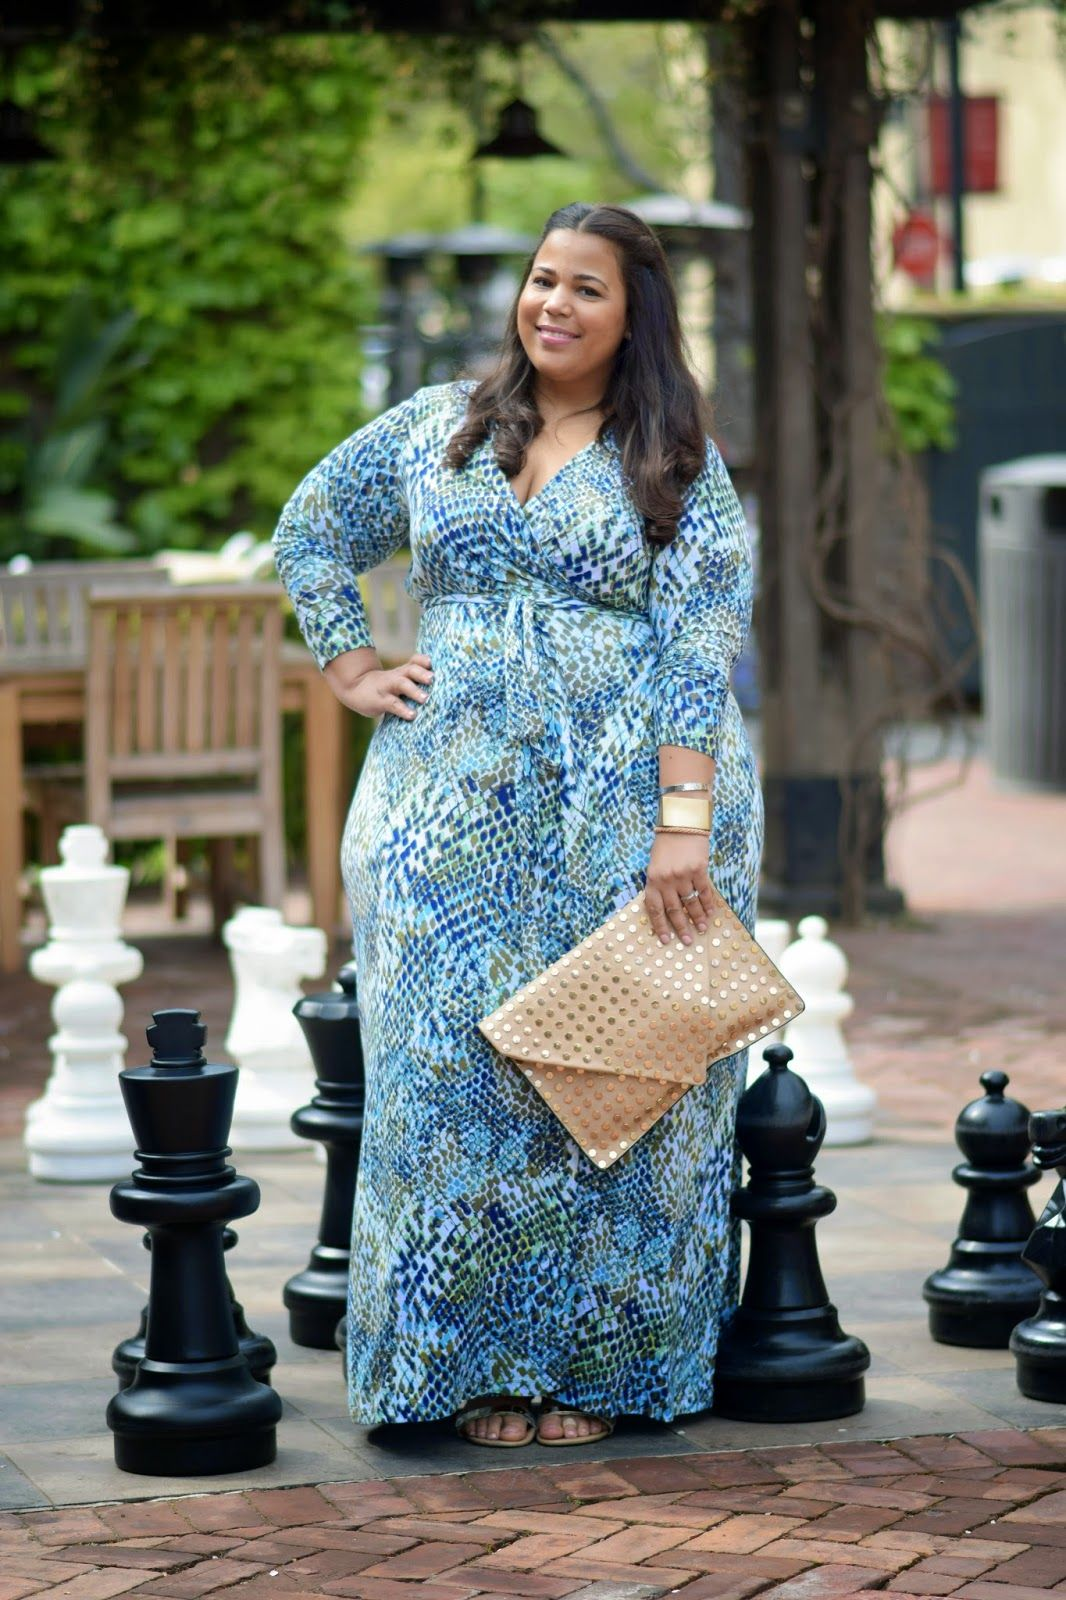 ecf94d66dfd Pin by Autumn Monaghan on Curvy Plus Size Fashion in 2019 ...